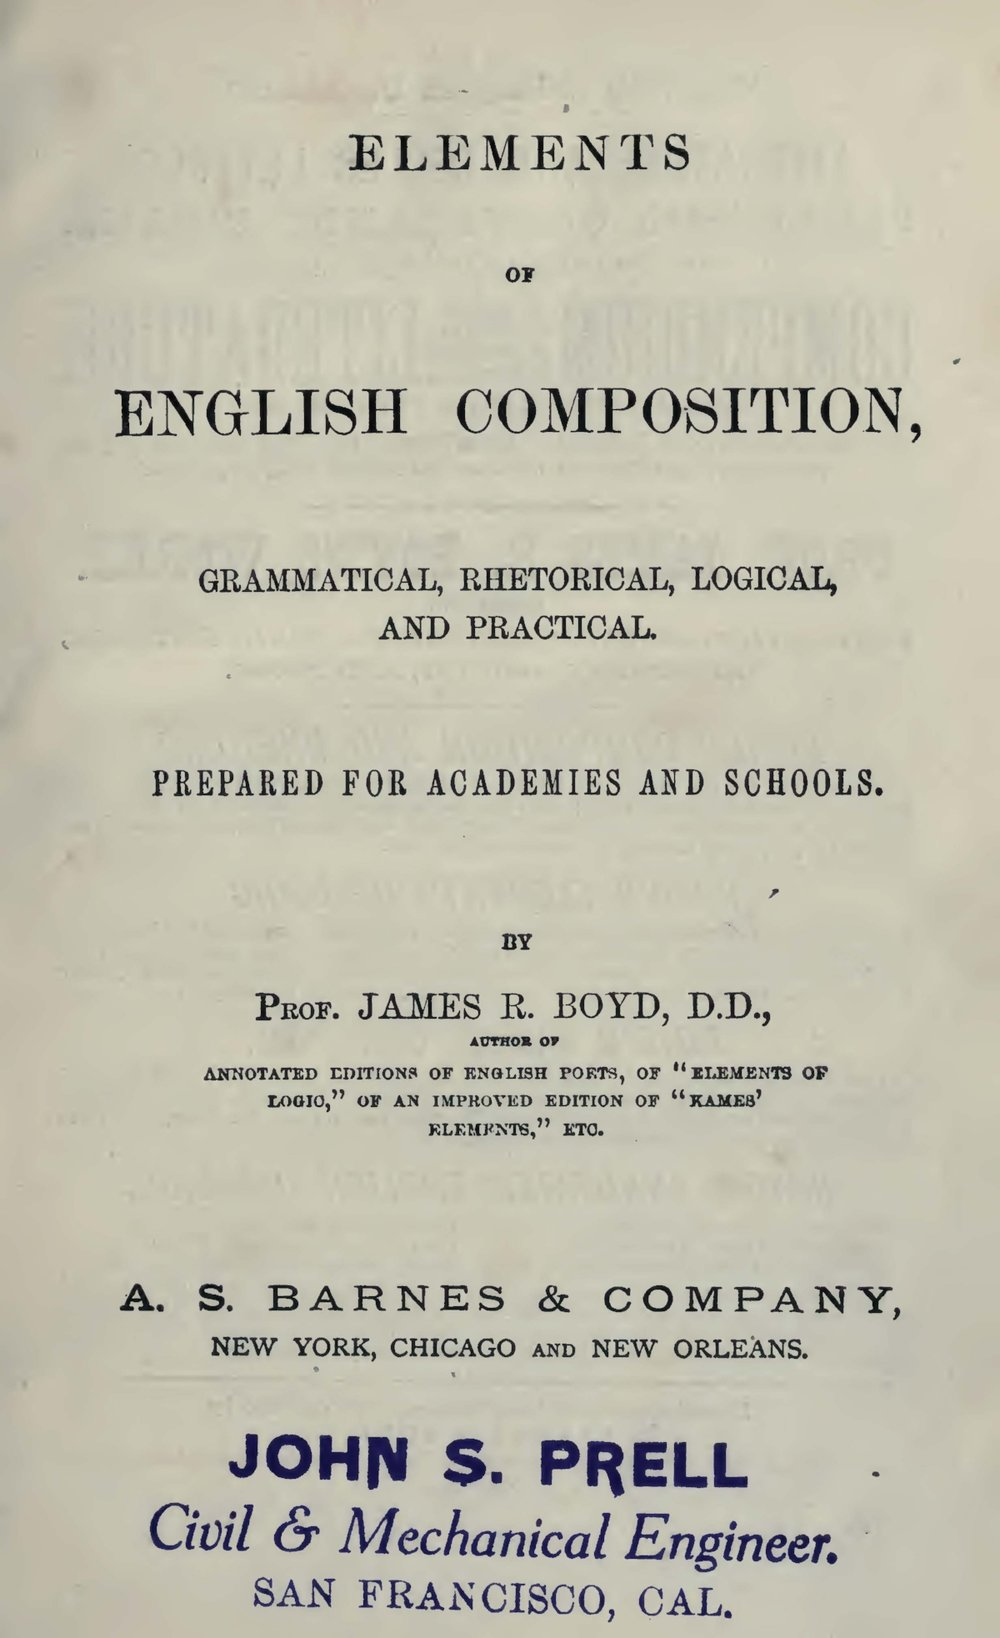 Boyd, James Robert, Elements of English Composition Title Page.jpg